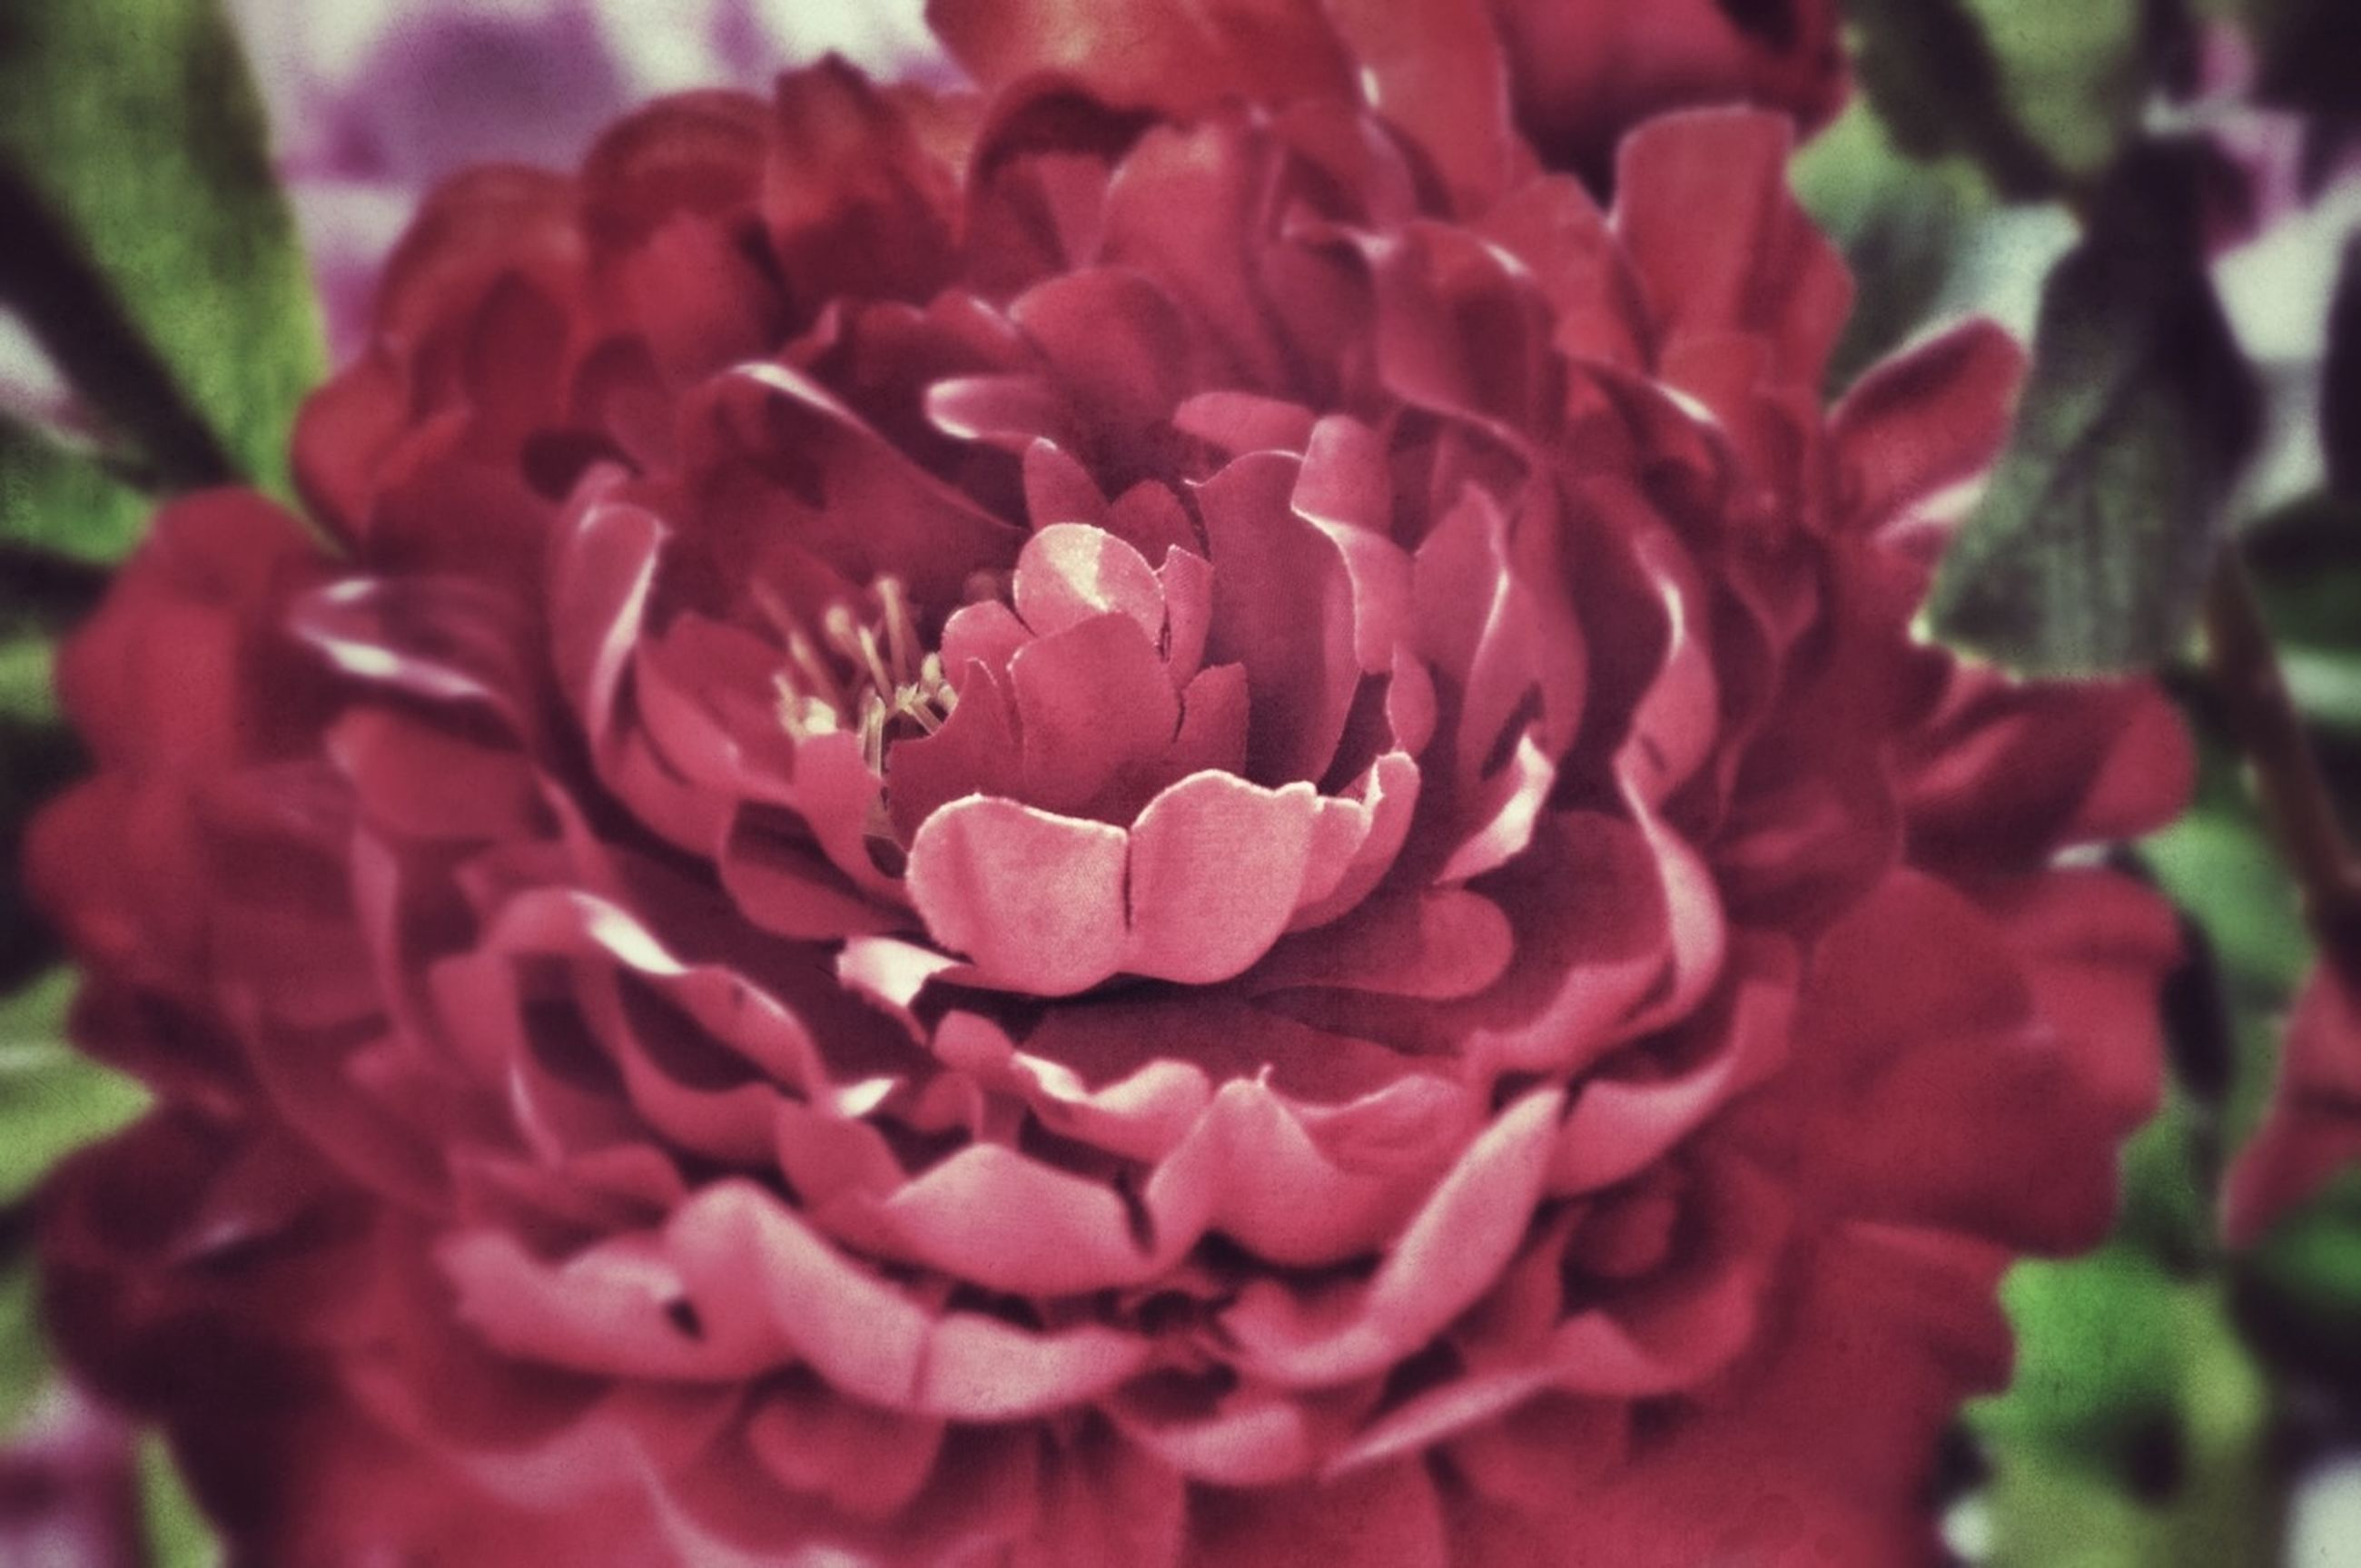 flower, petal, freshness, flower head, fragility, growth, close-up, beauty in nature, focus on foreground, nature, blooming, plant, single flower, pink color, in bloom, red, rose - flower, day, park - man made space, outdoors